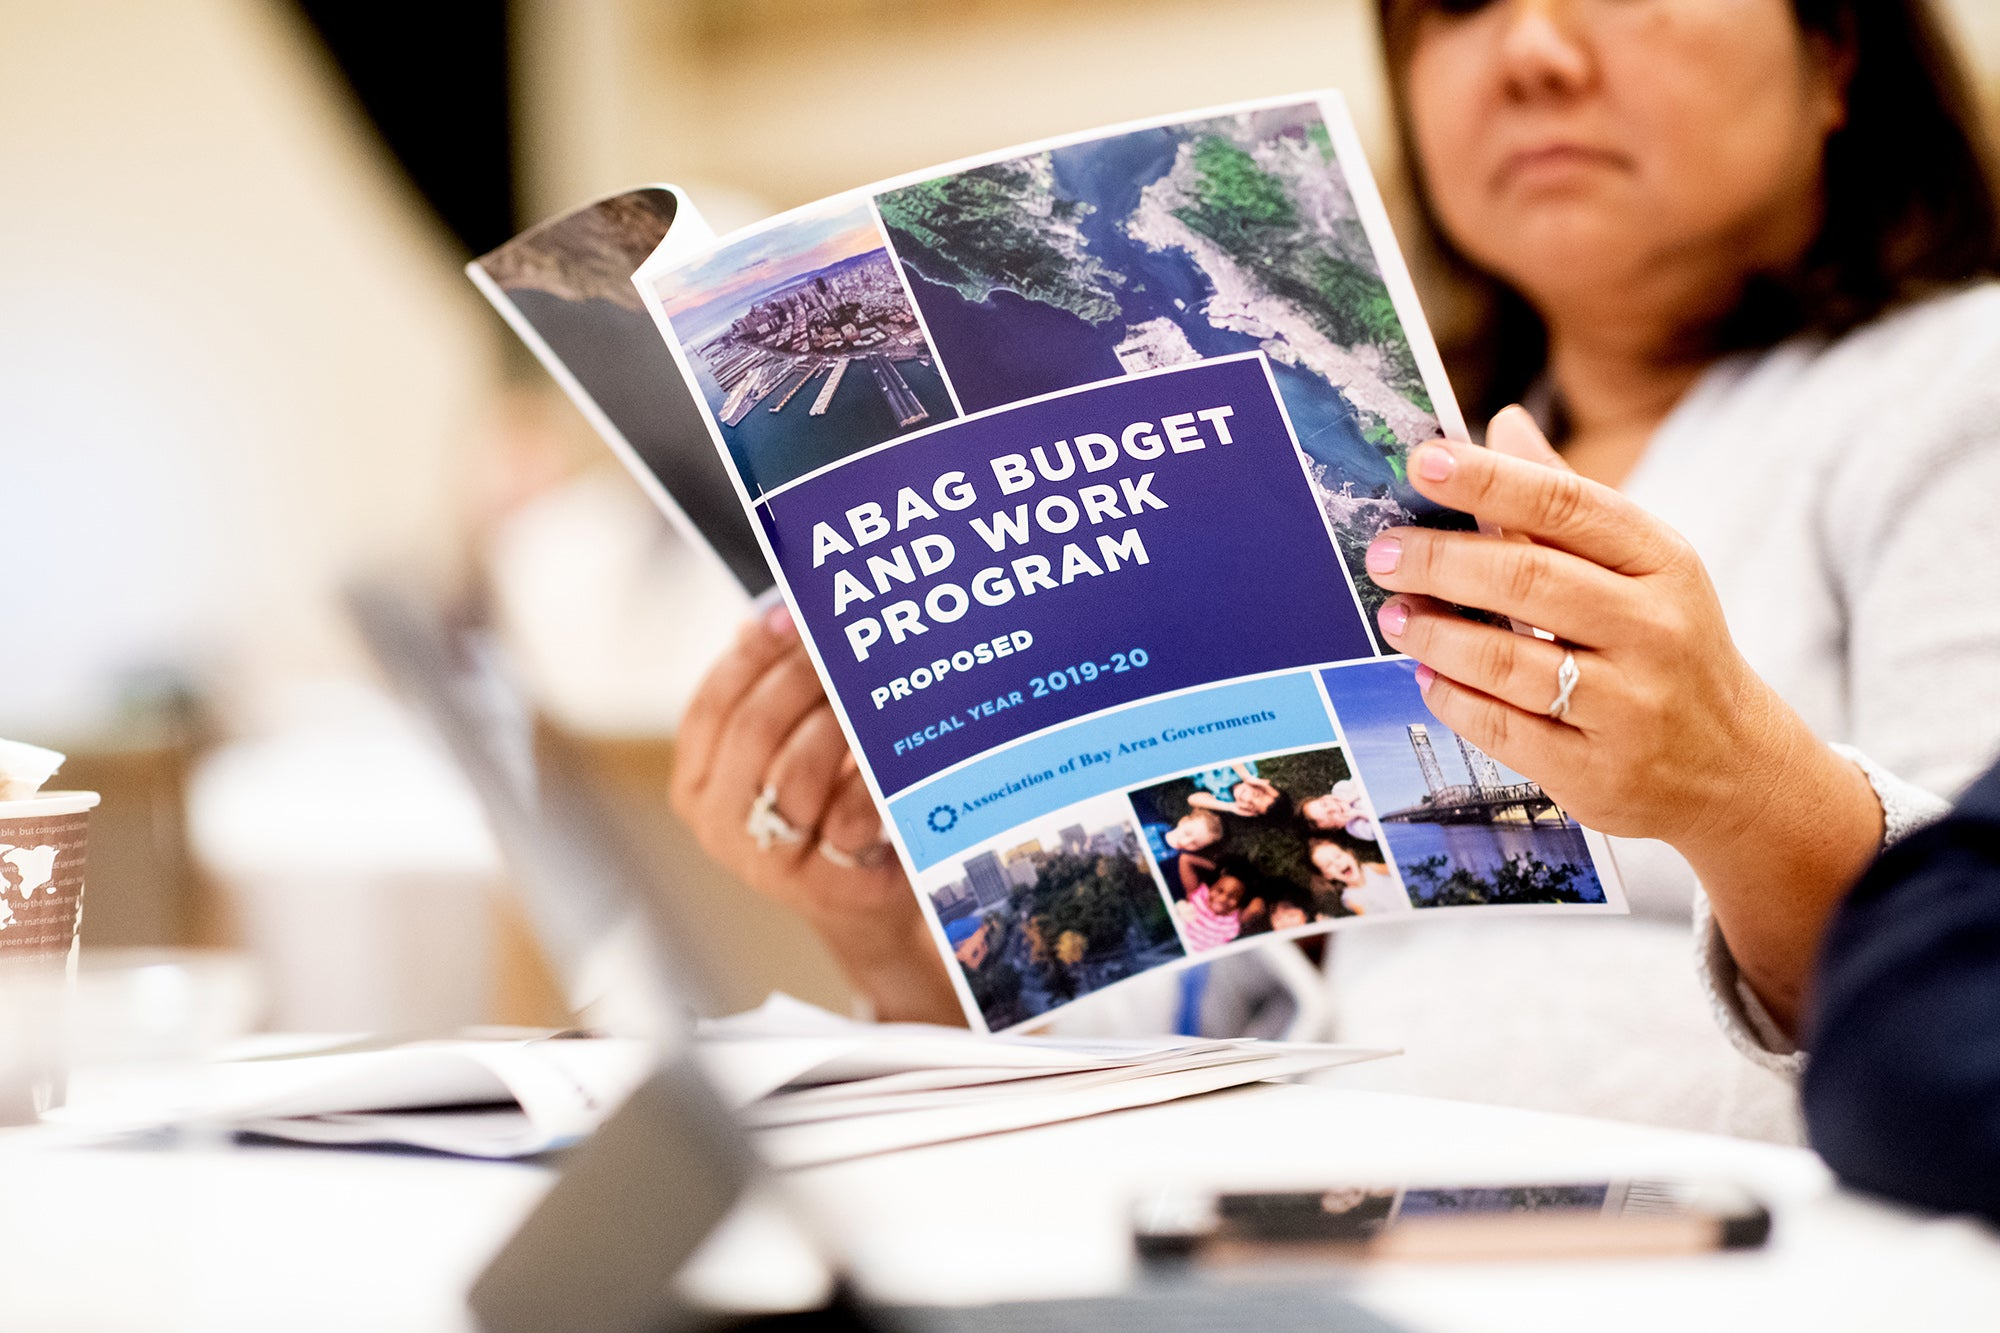 ABAG Budget and Work Program